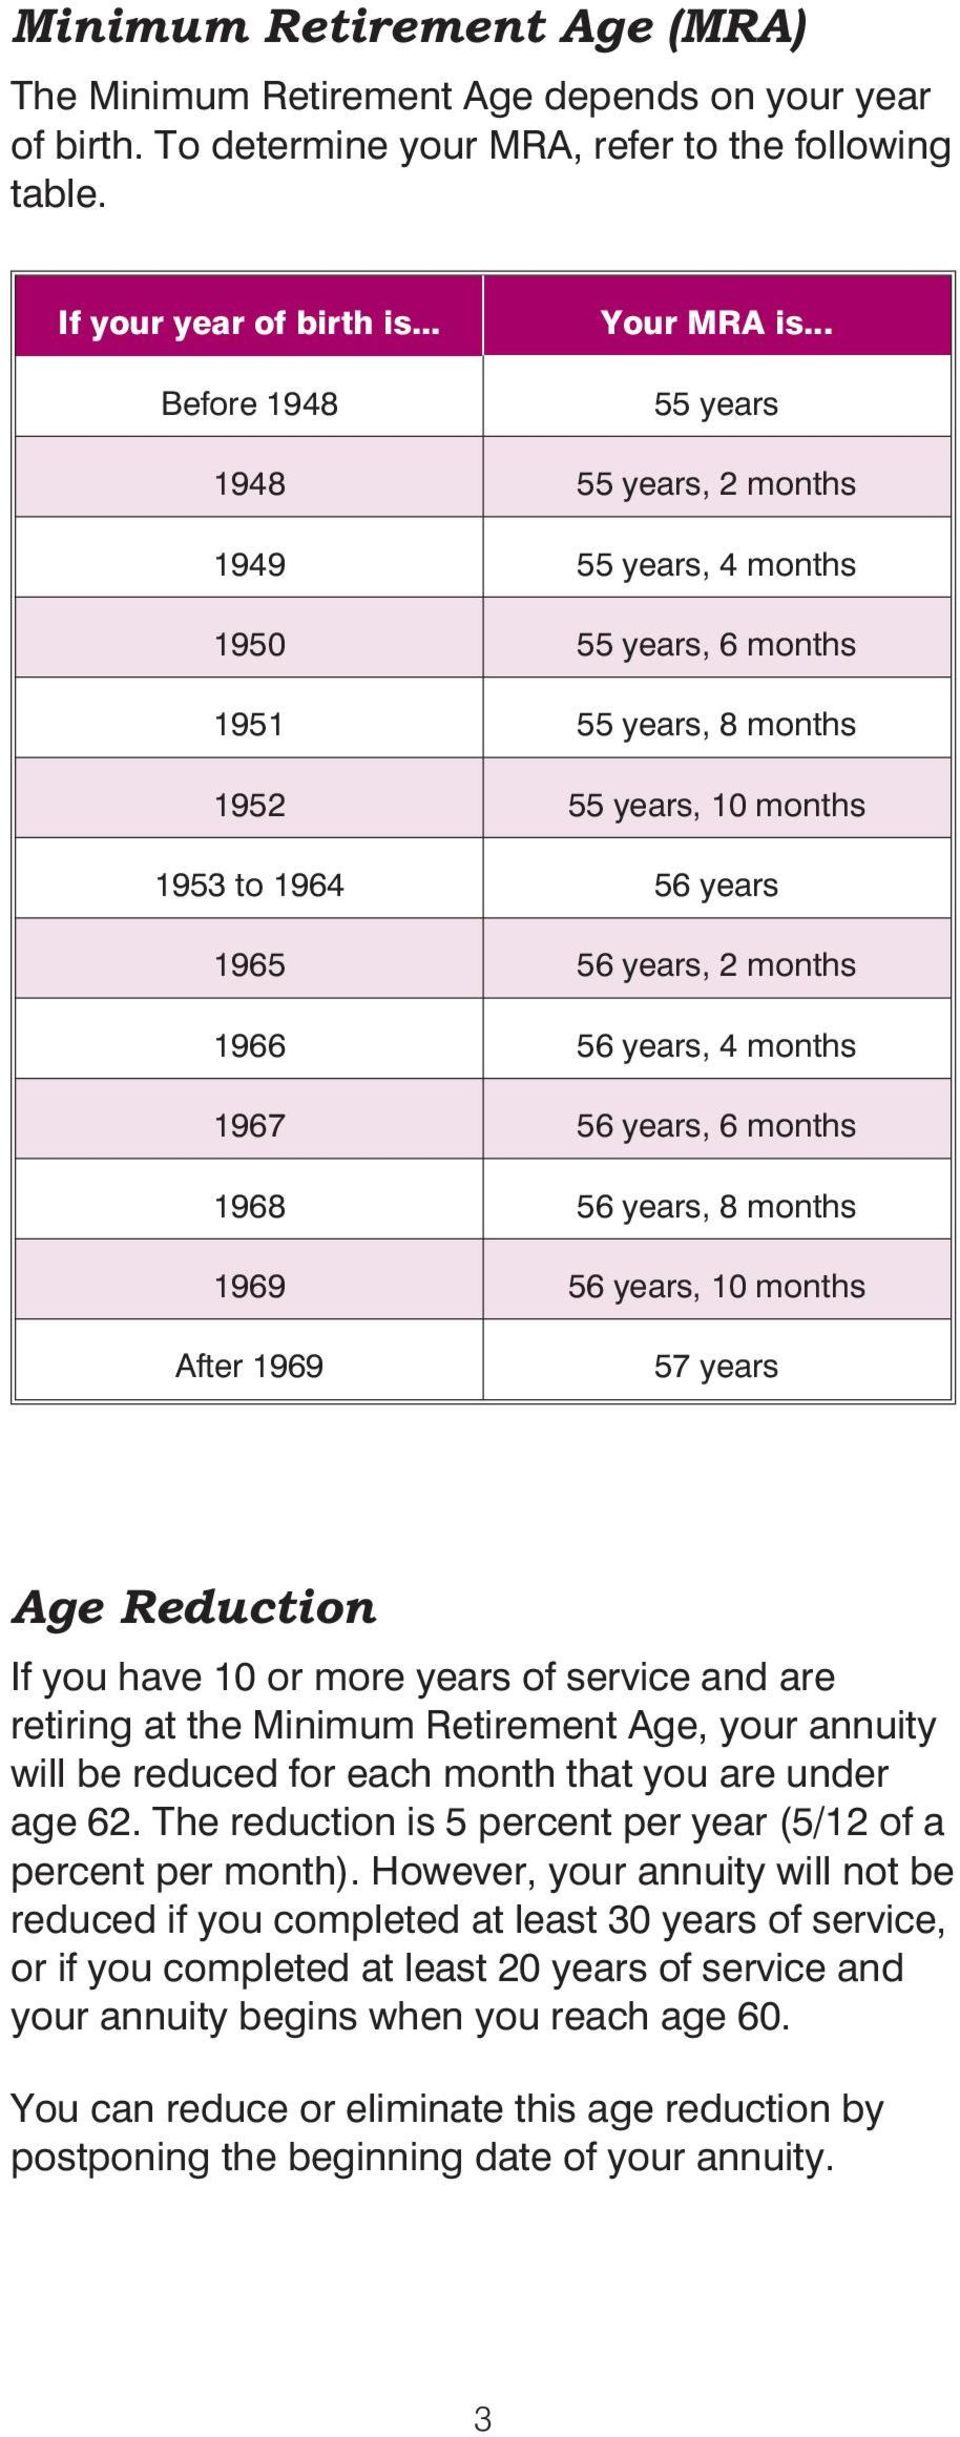 months 1967 56 years, 6 months 1968 56 years, 8 months 1969 56 years, 10 months After 1969 57 years Age Reduction If you have 10 or more years of service and are retiring at the Minimum Retirement